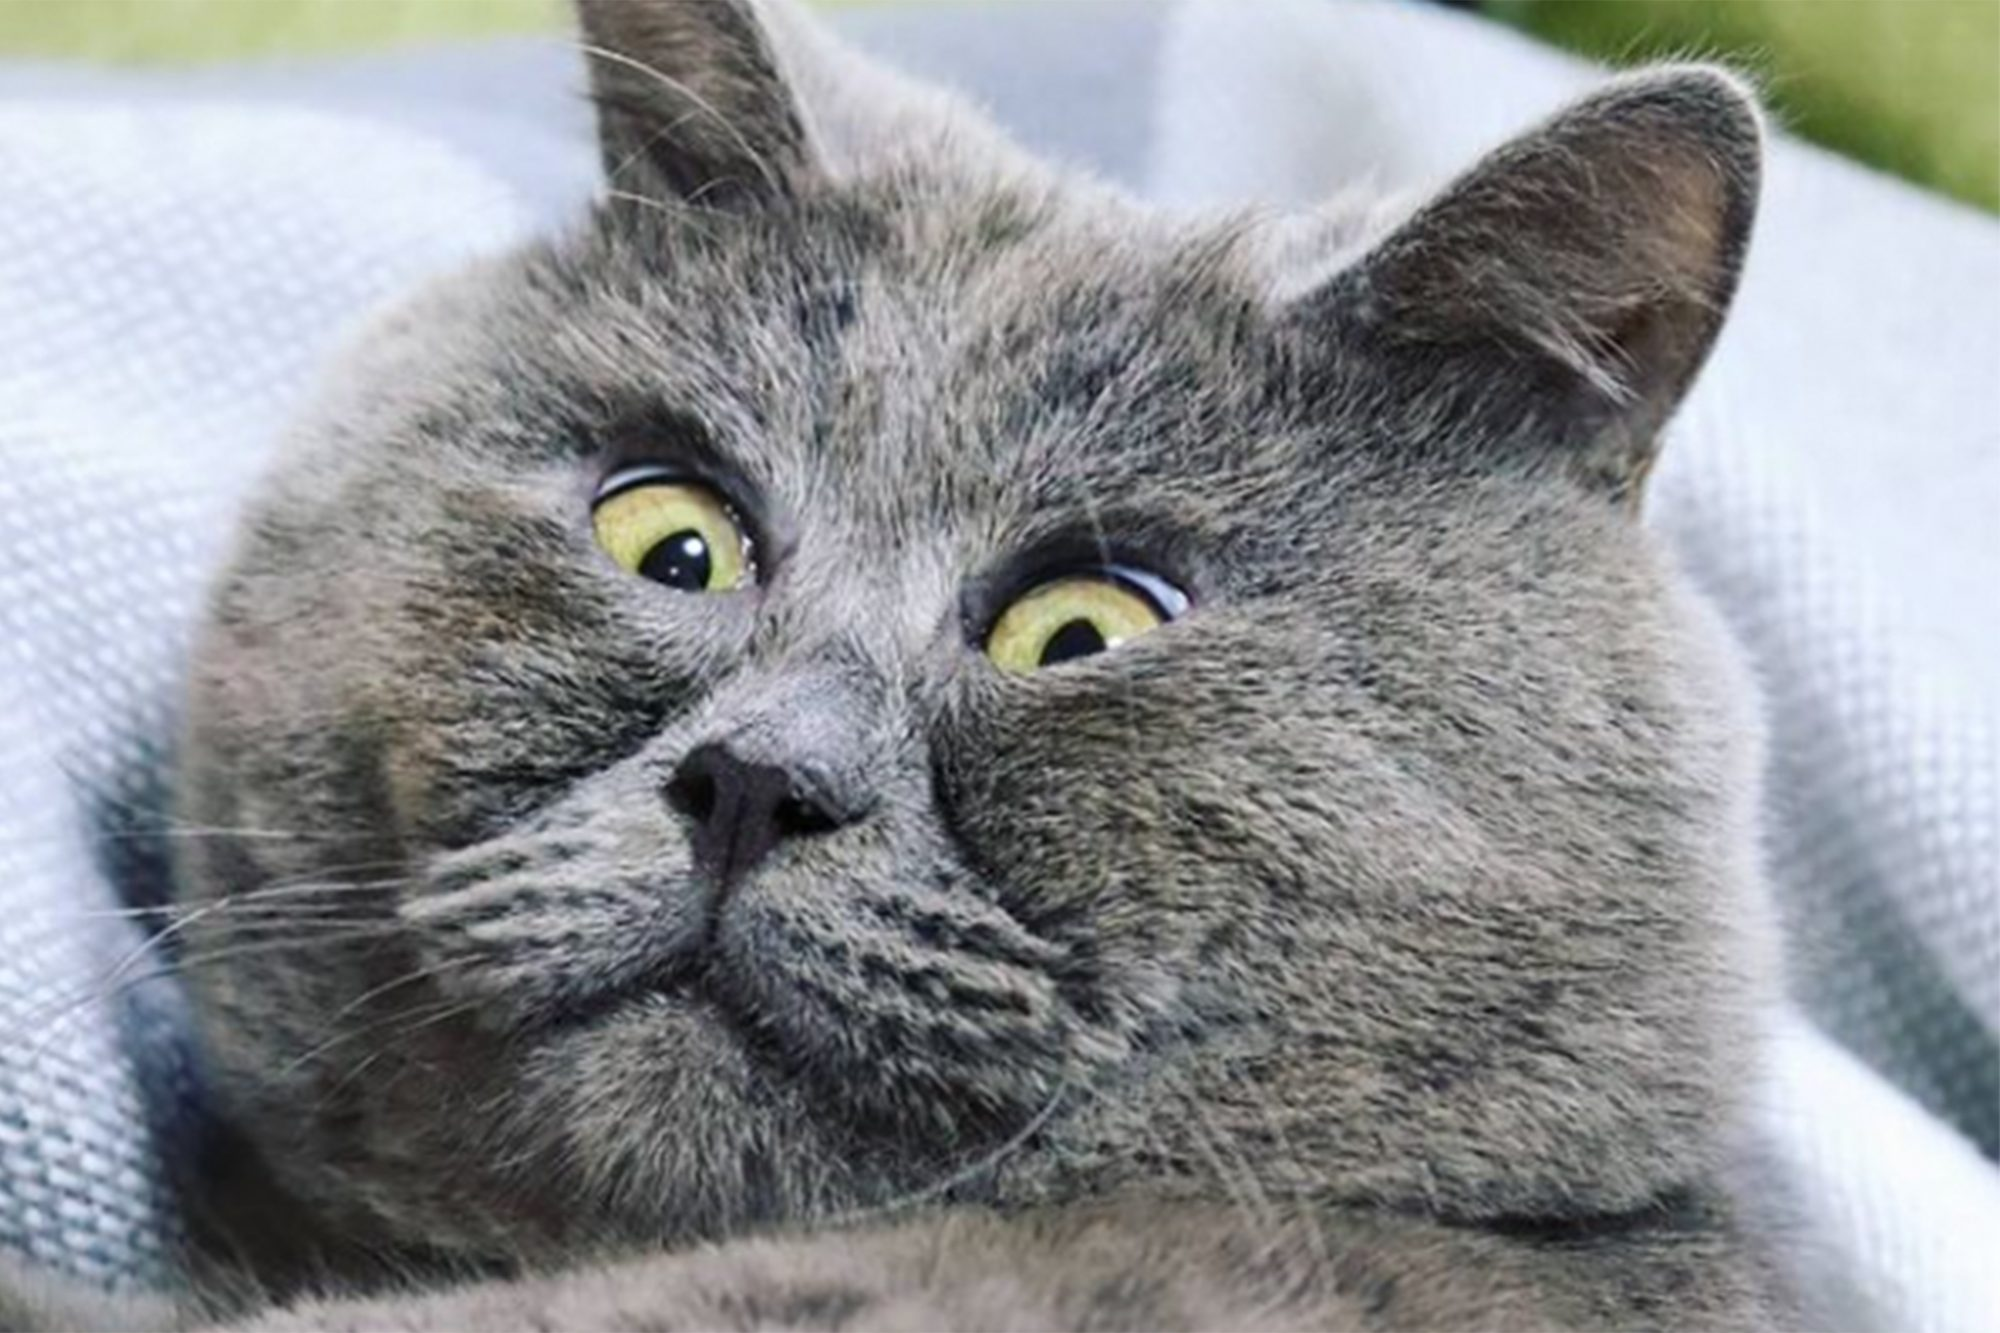 close up of grey cat with startled expression